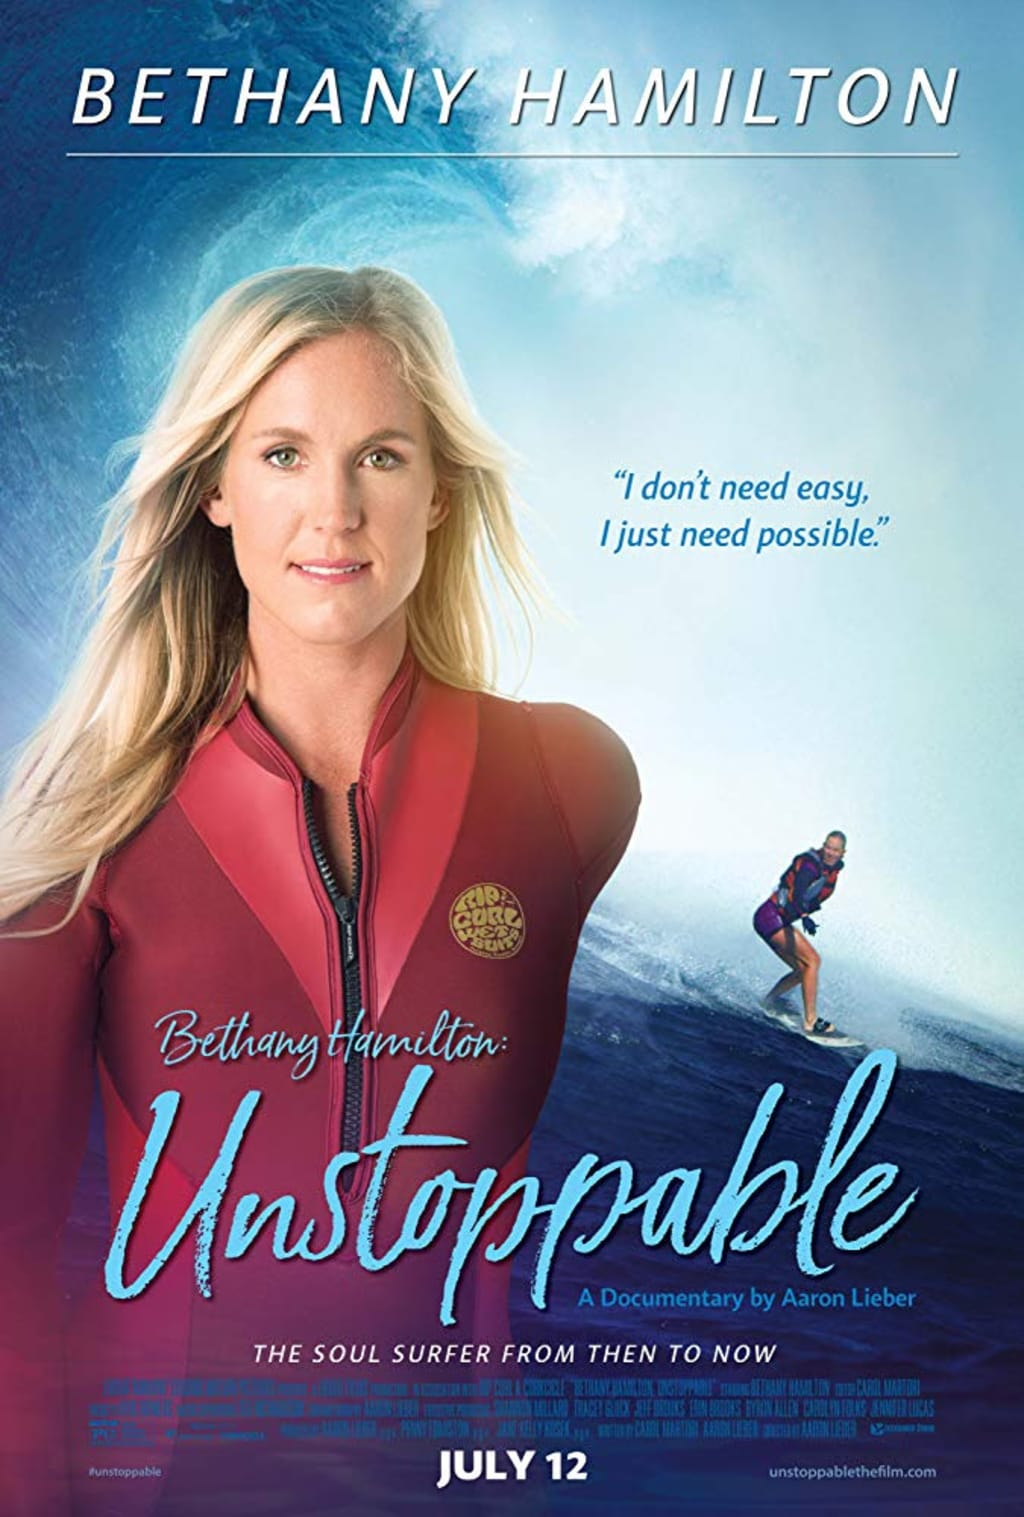 Movie Review: 'Bethany Hamilton: Unstoppable' A Portrait of Determination and Faith